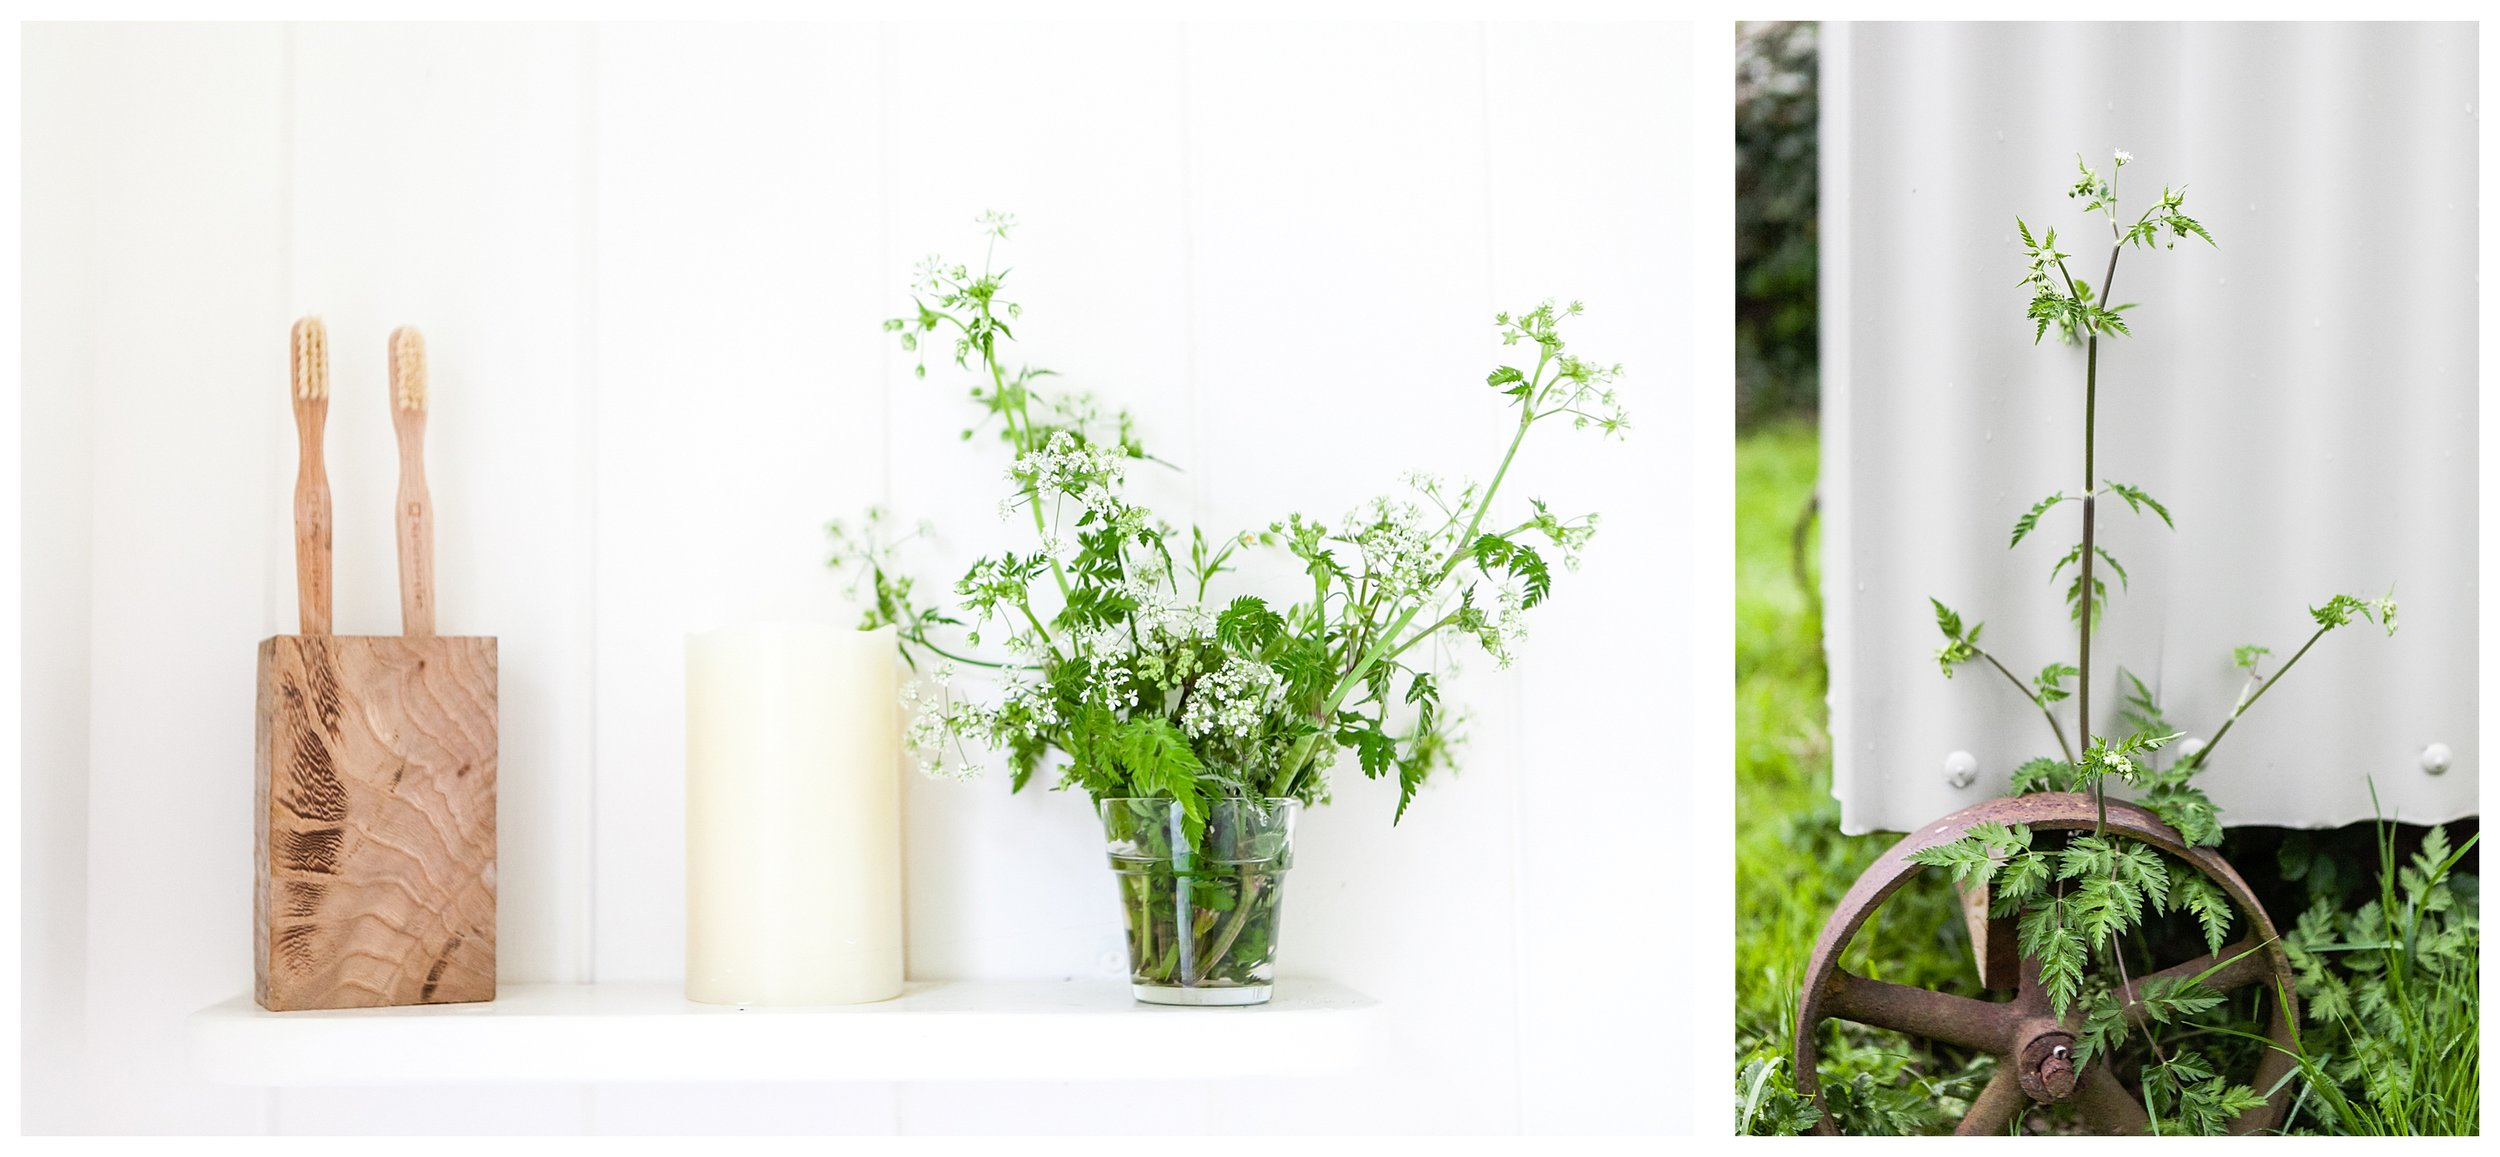 Natural brand photography by Katie Spicer